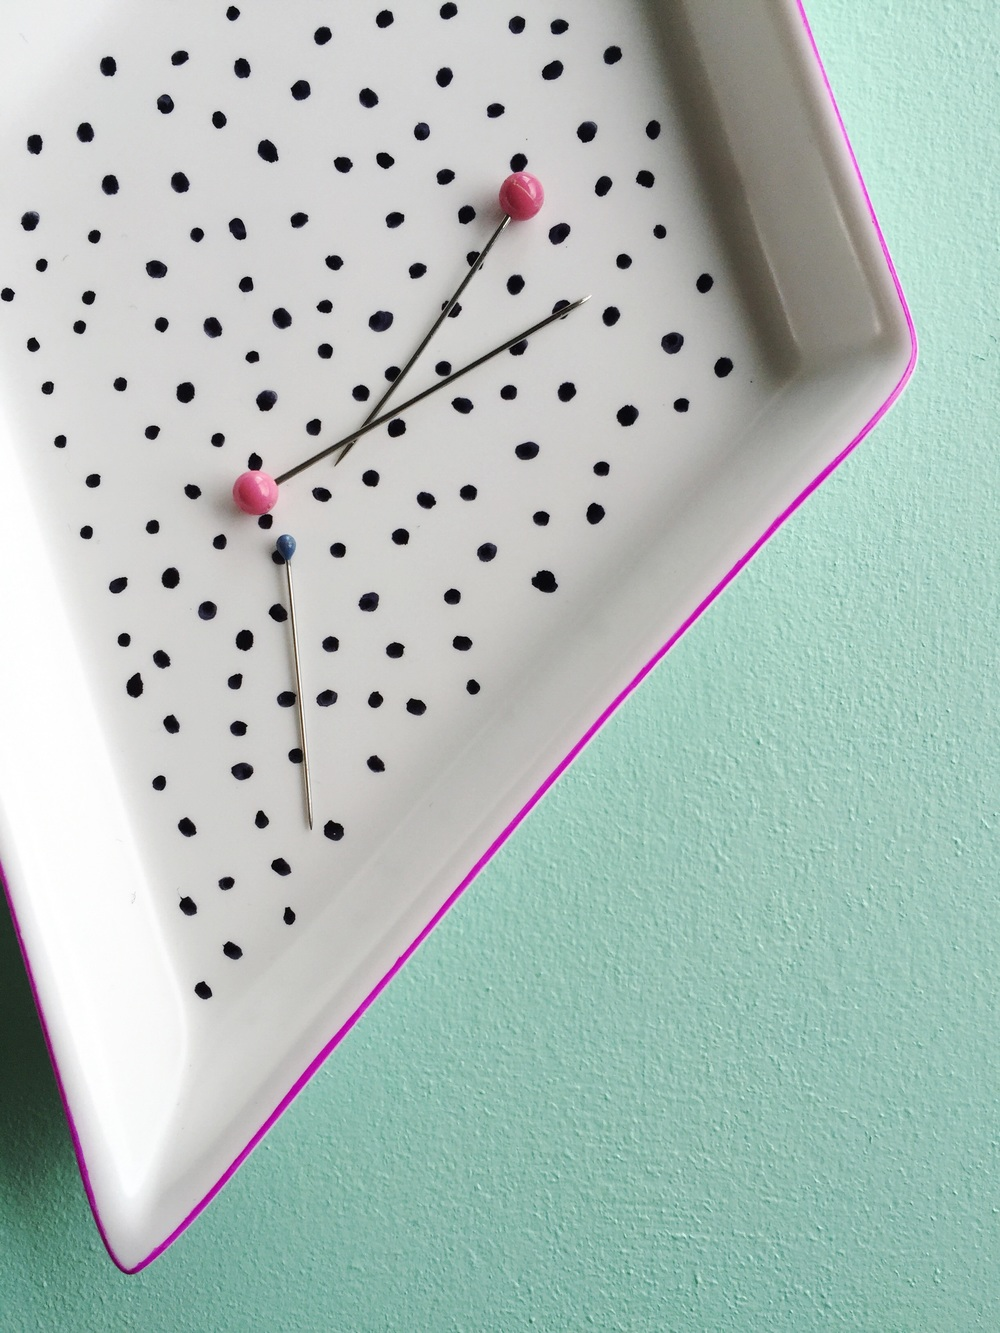 Make your own diy magnetic pin dish.